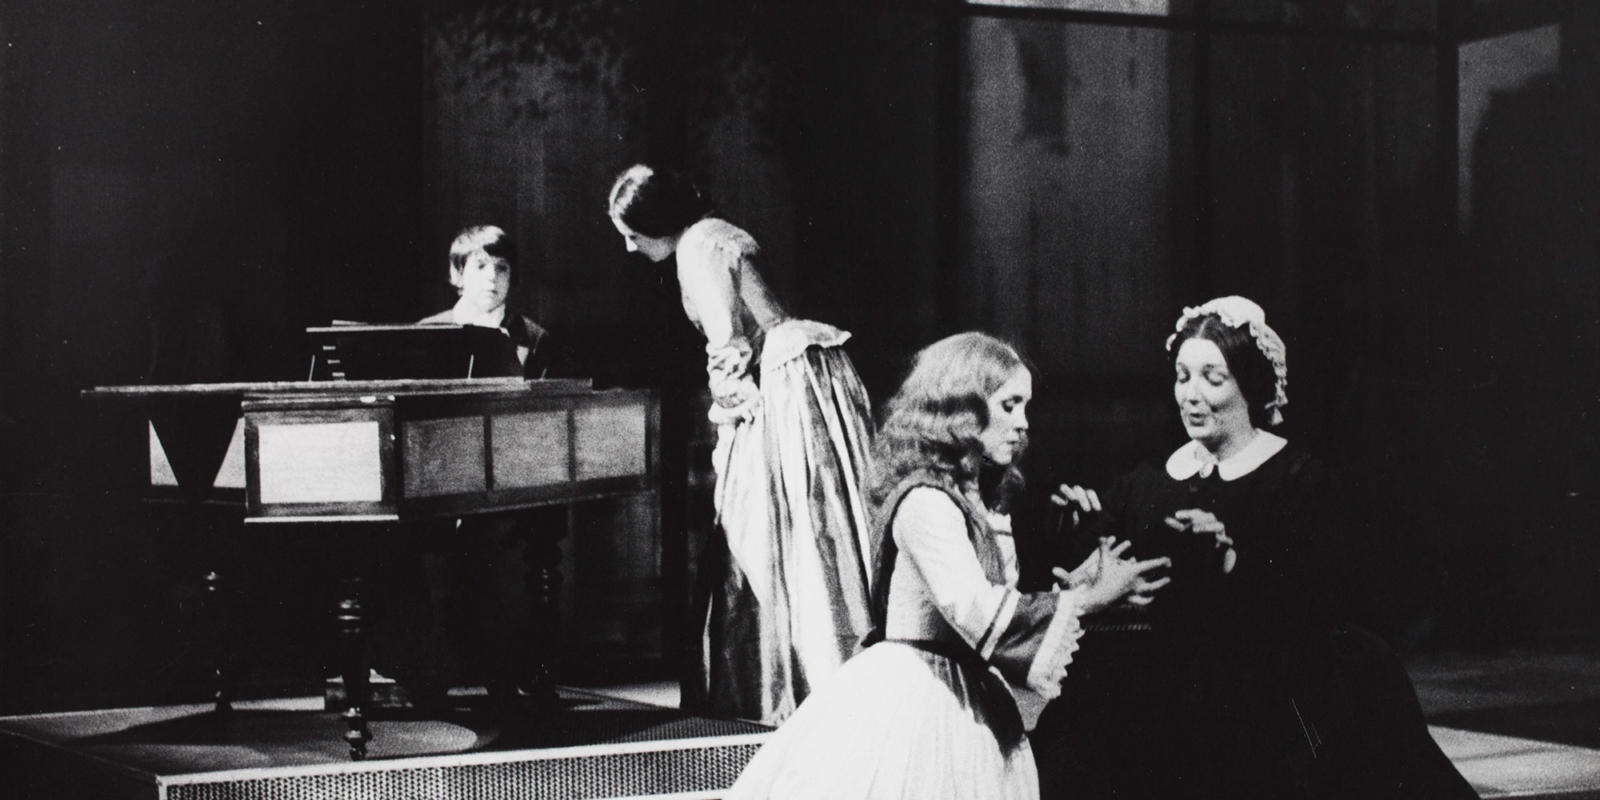 ENO The Turn of the Screw 1979: Michael Ginn as Miles, Eilene Hannan as the Governess, Iris Saunders as Flora and Ava June as Mrs Grose. With thanks to Gareth Roberts.